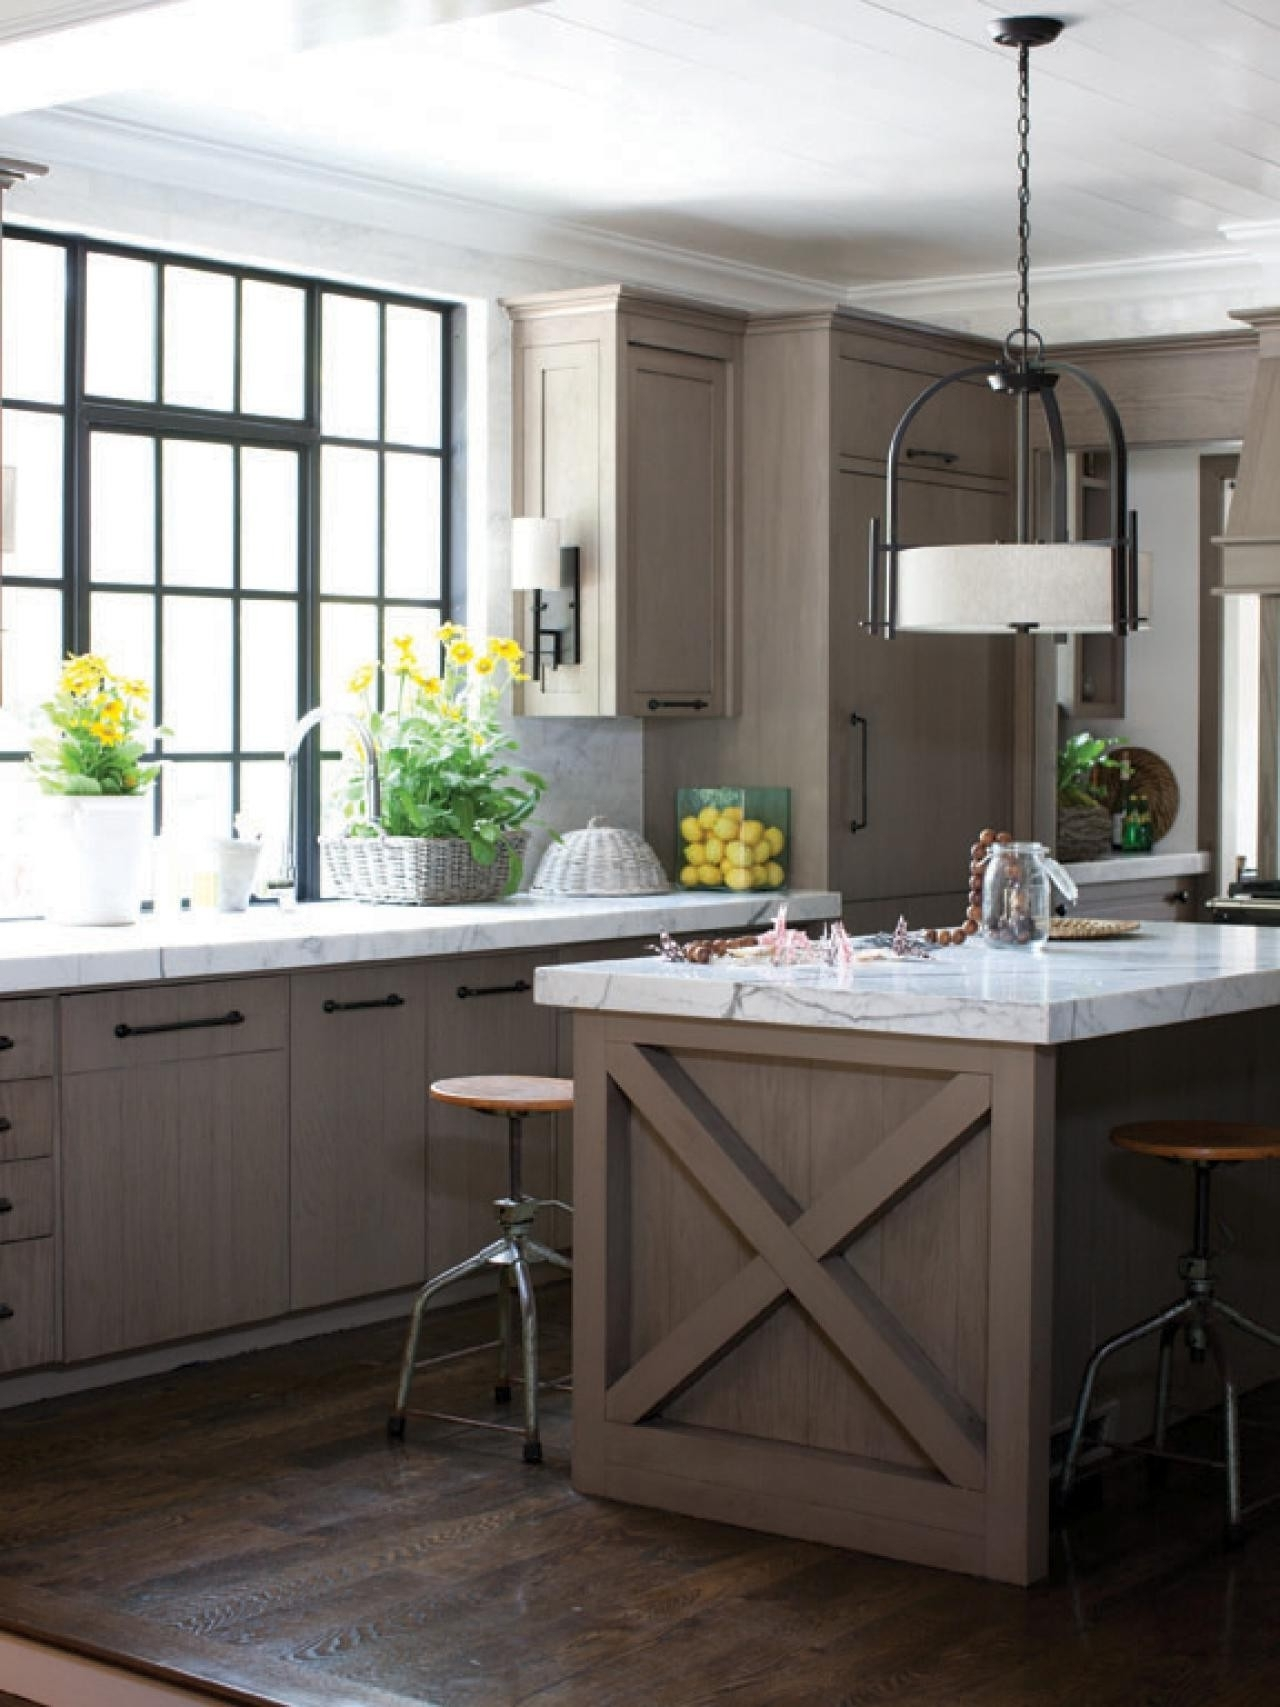 Fashionable Small Rustic Kitchen Chandeliers Pertaining To Wrought Iron Kitchen Island Lighting Elegant Chandeliers Design (View 8 of 15)